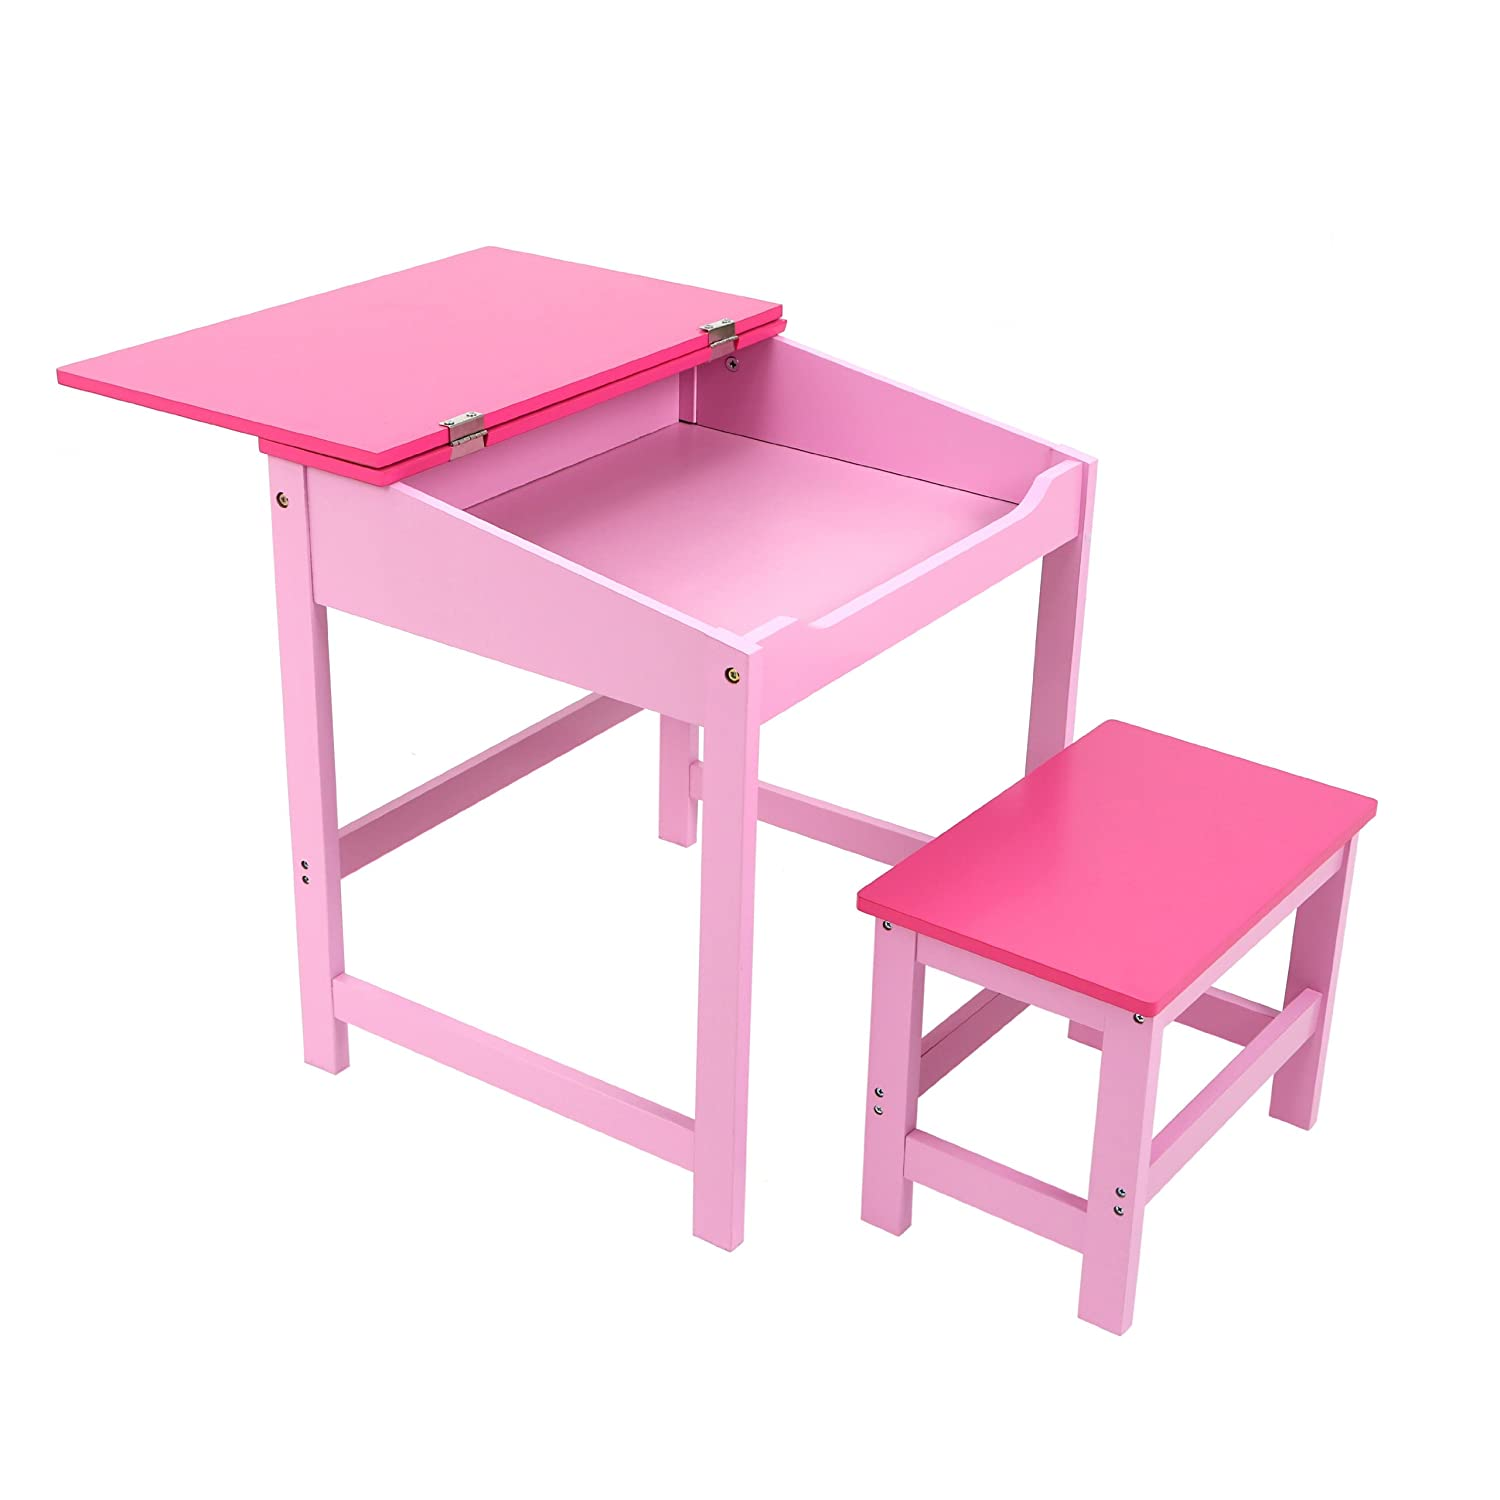 stool danielarubinodesigns designs product louis original rubino by childrens children daniela s desk and wooden